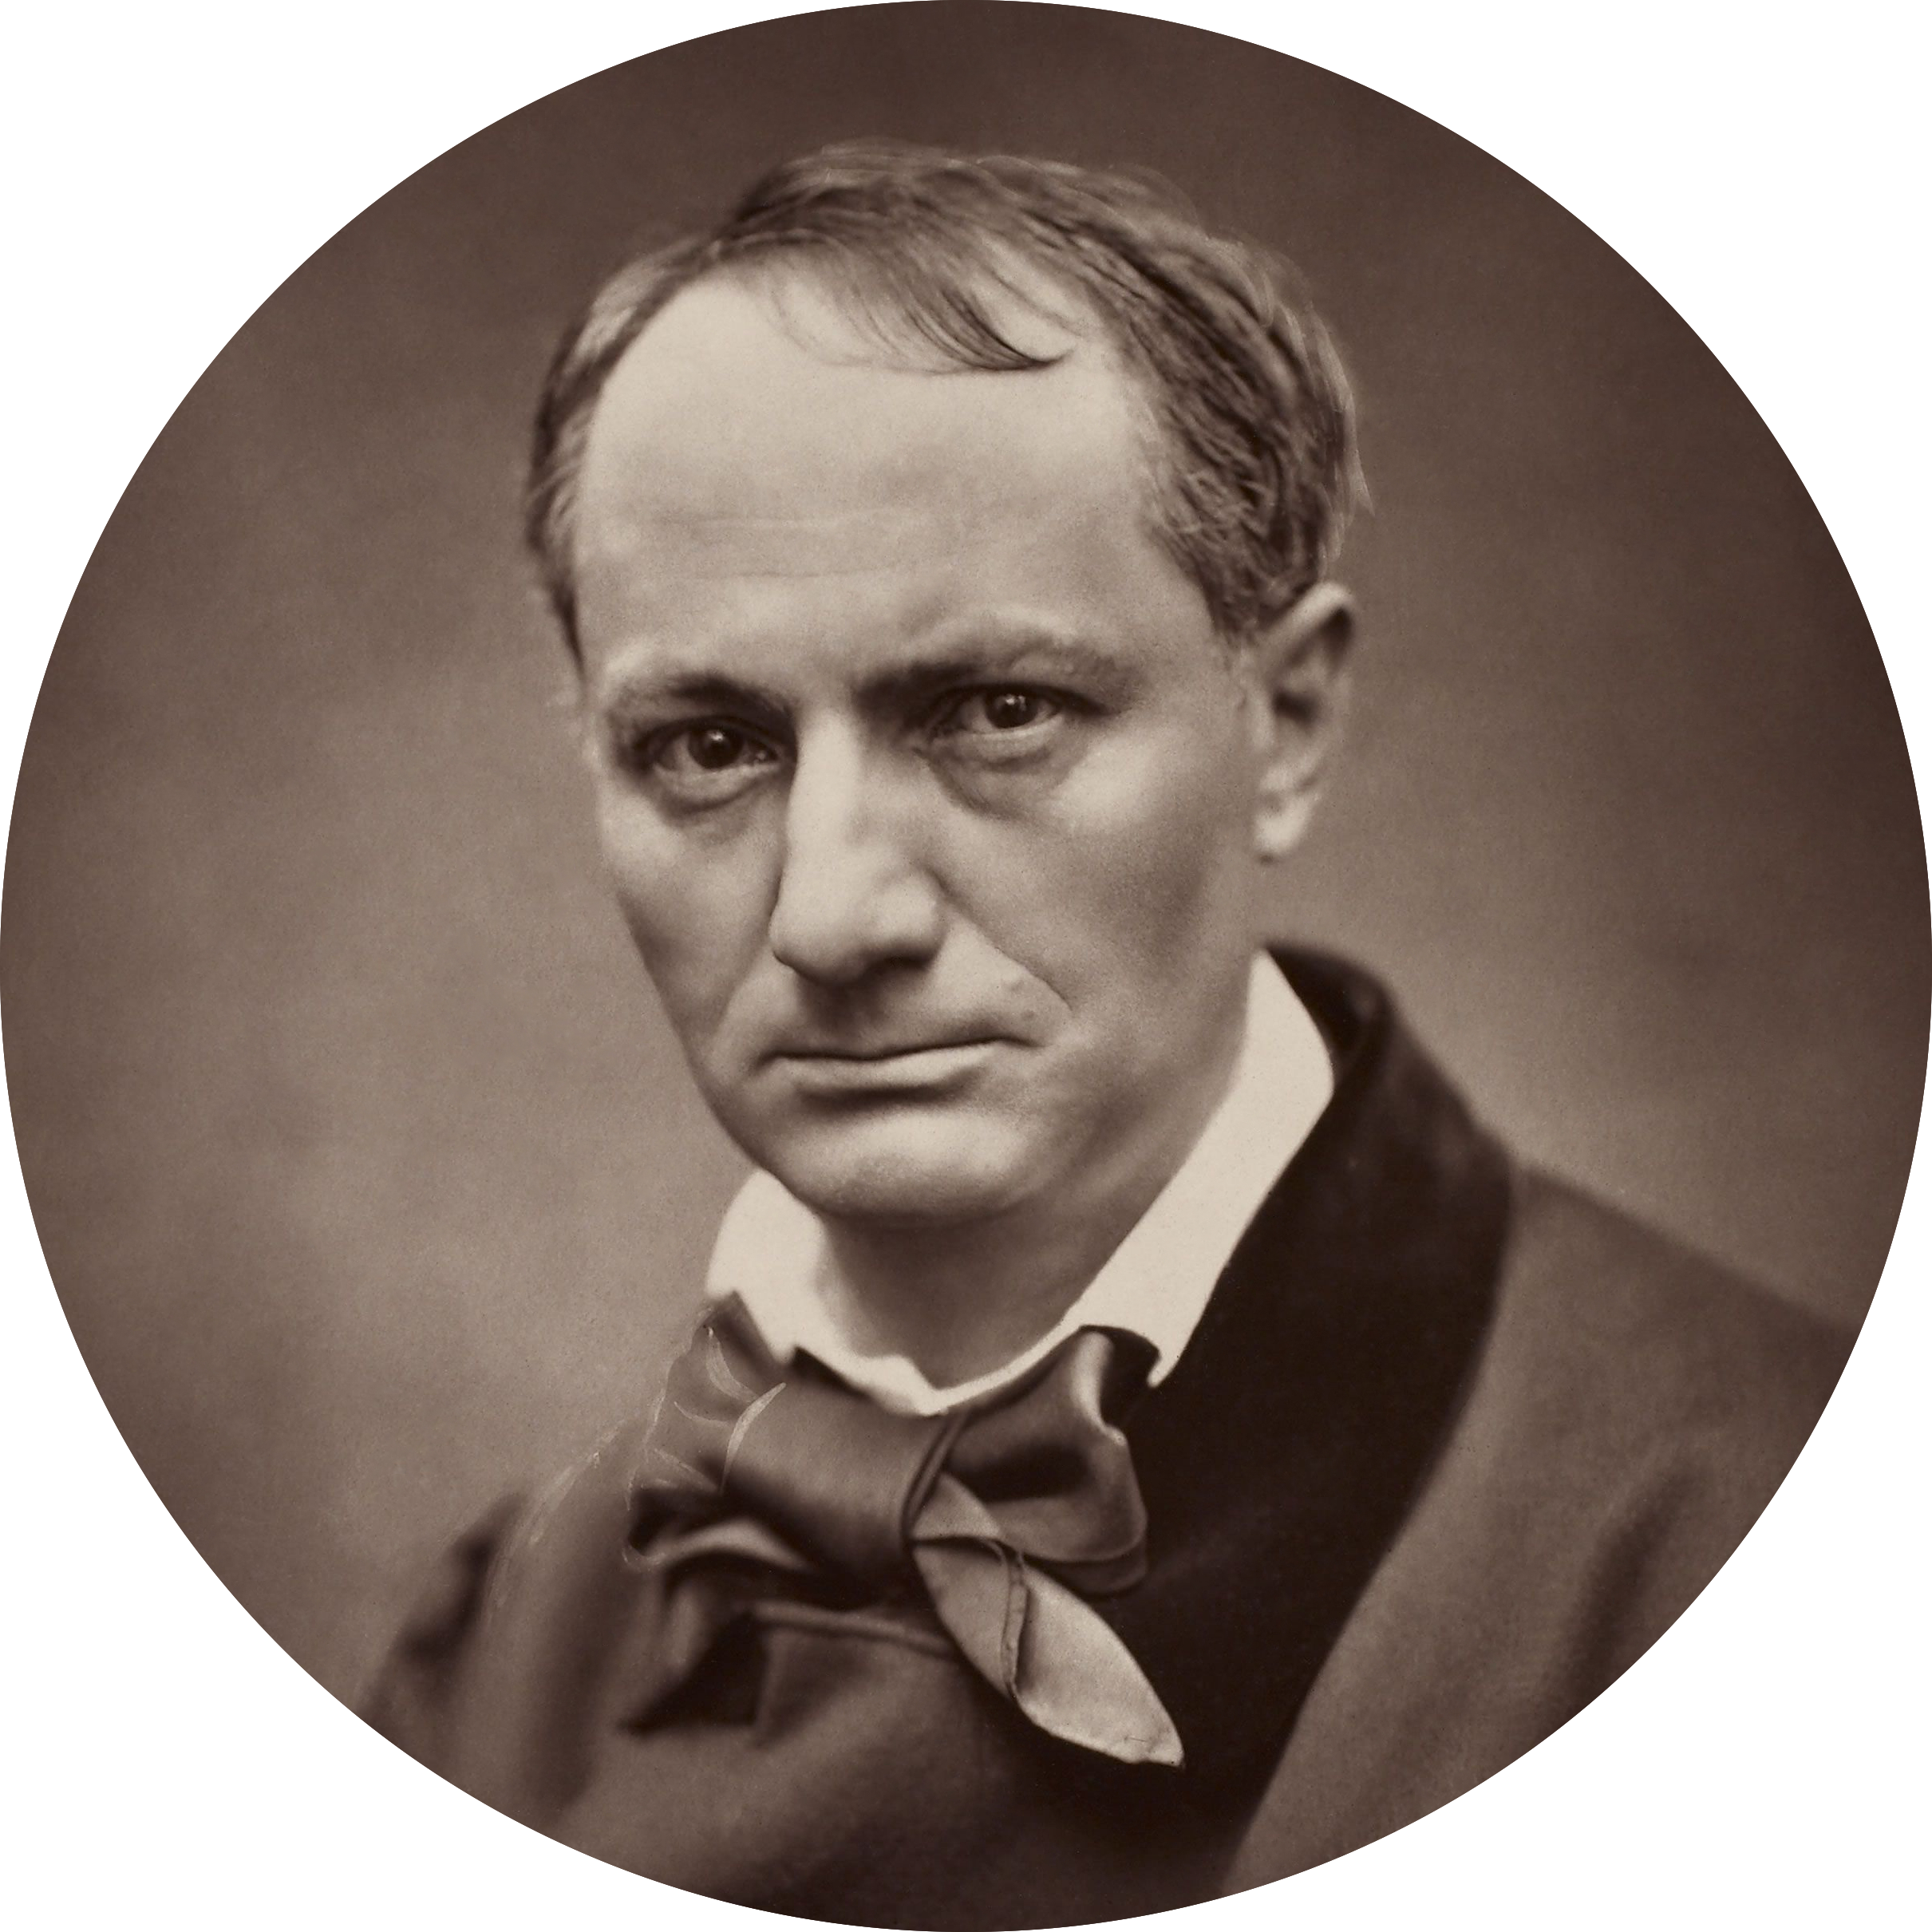 MyFrenchLife™ – MyFrenchLife.org – The Paris of Baudelaire